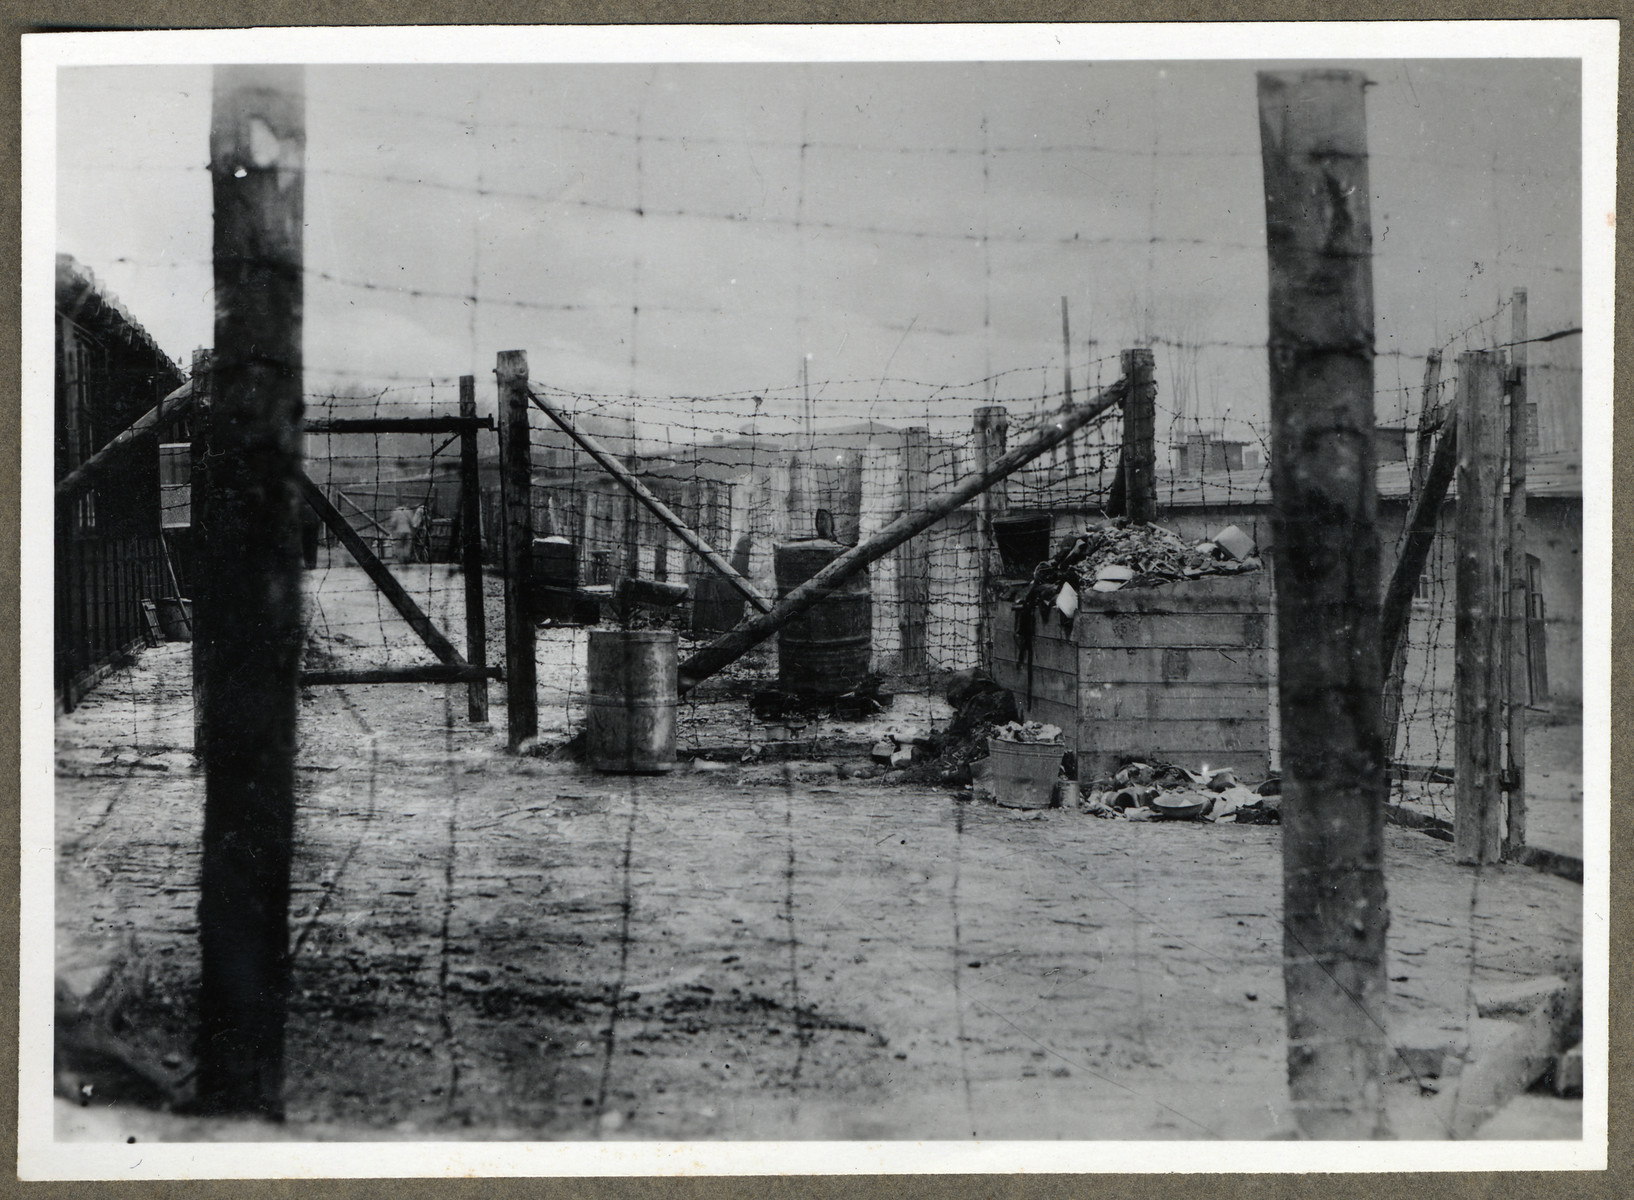 View of the barbed wire fence surrounding the Buchenwald concentration camp.